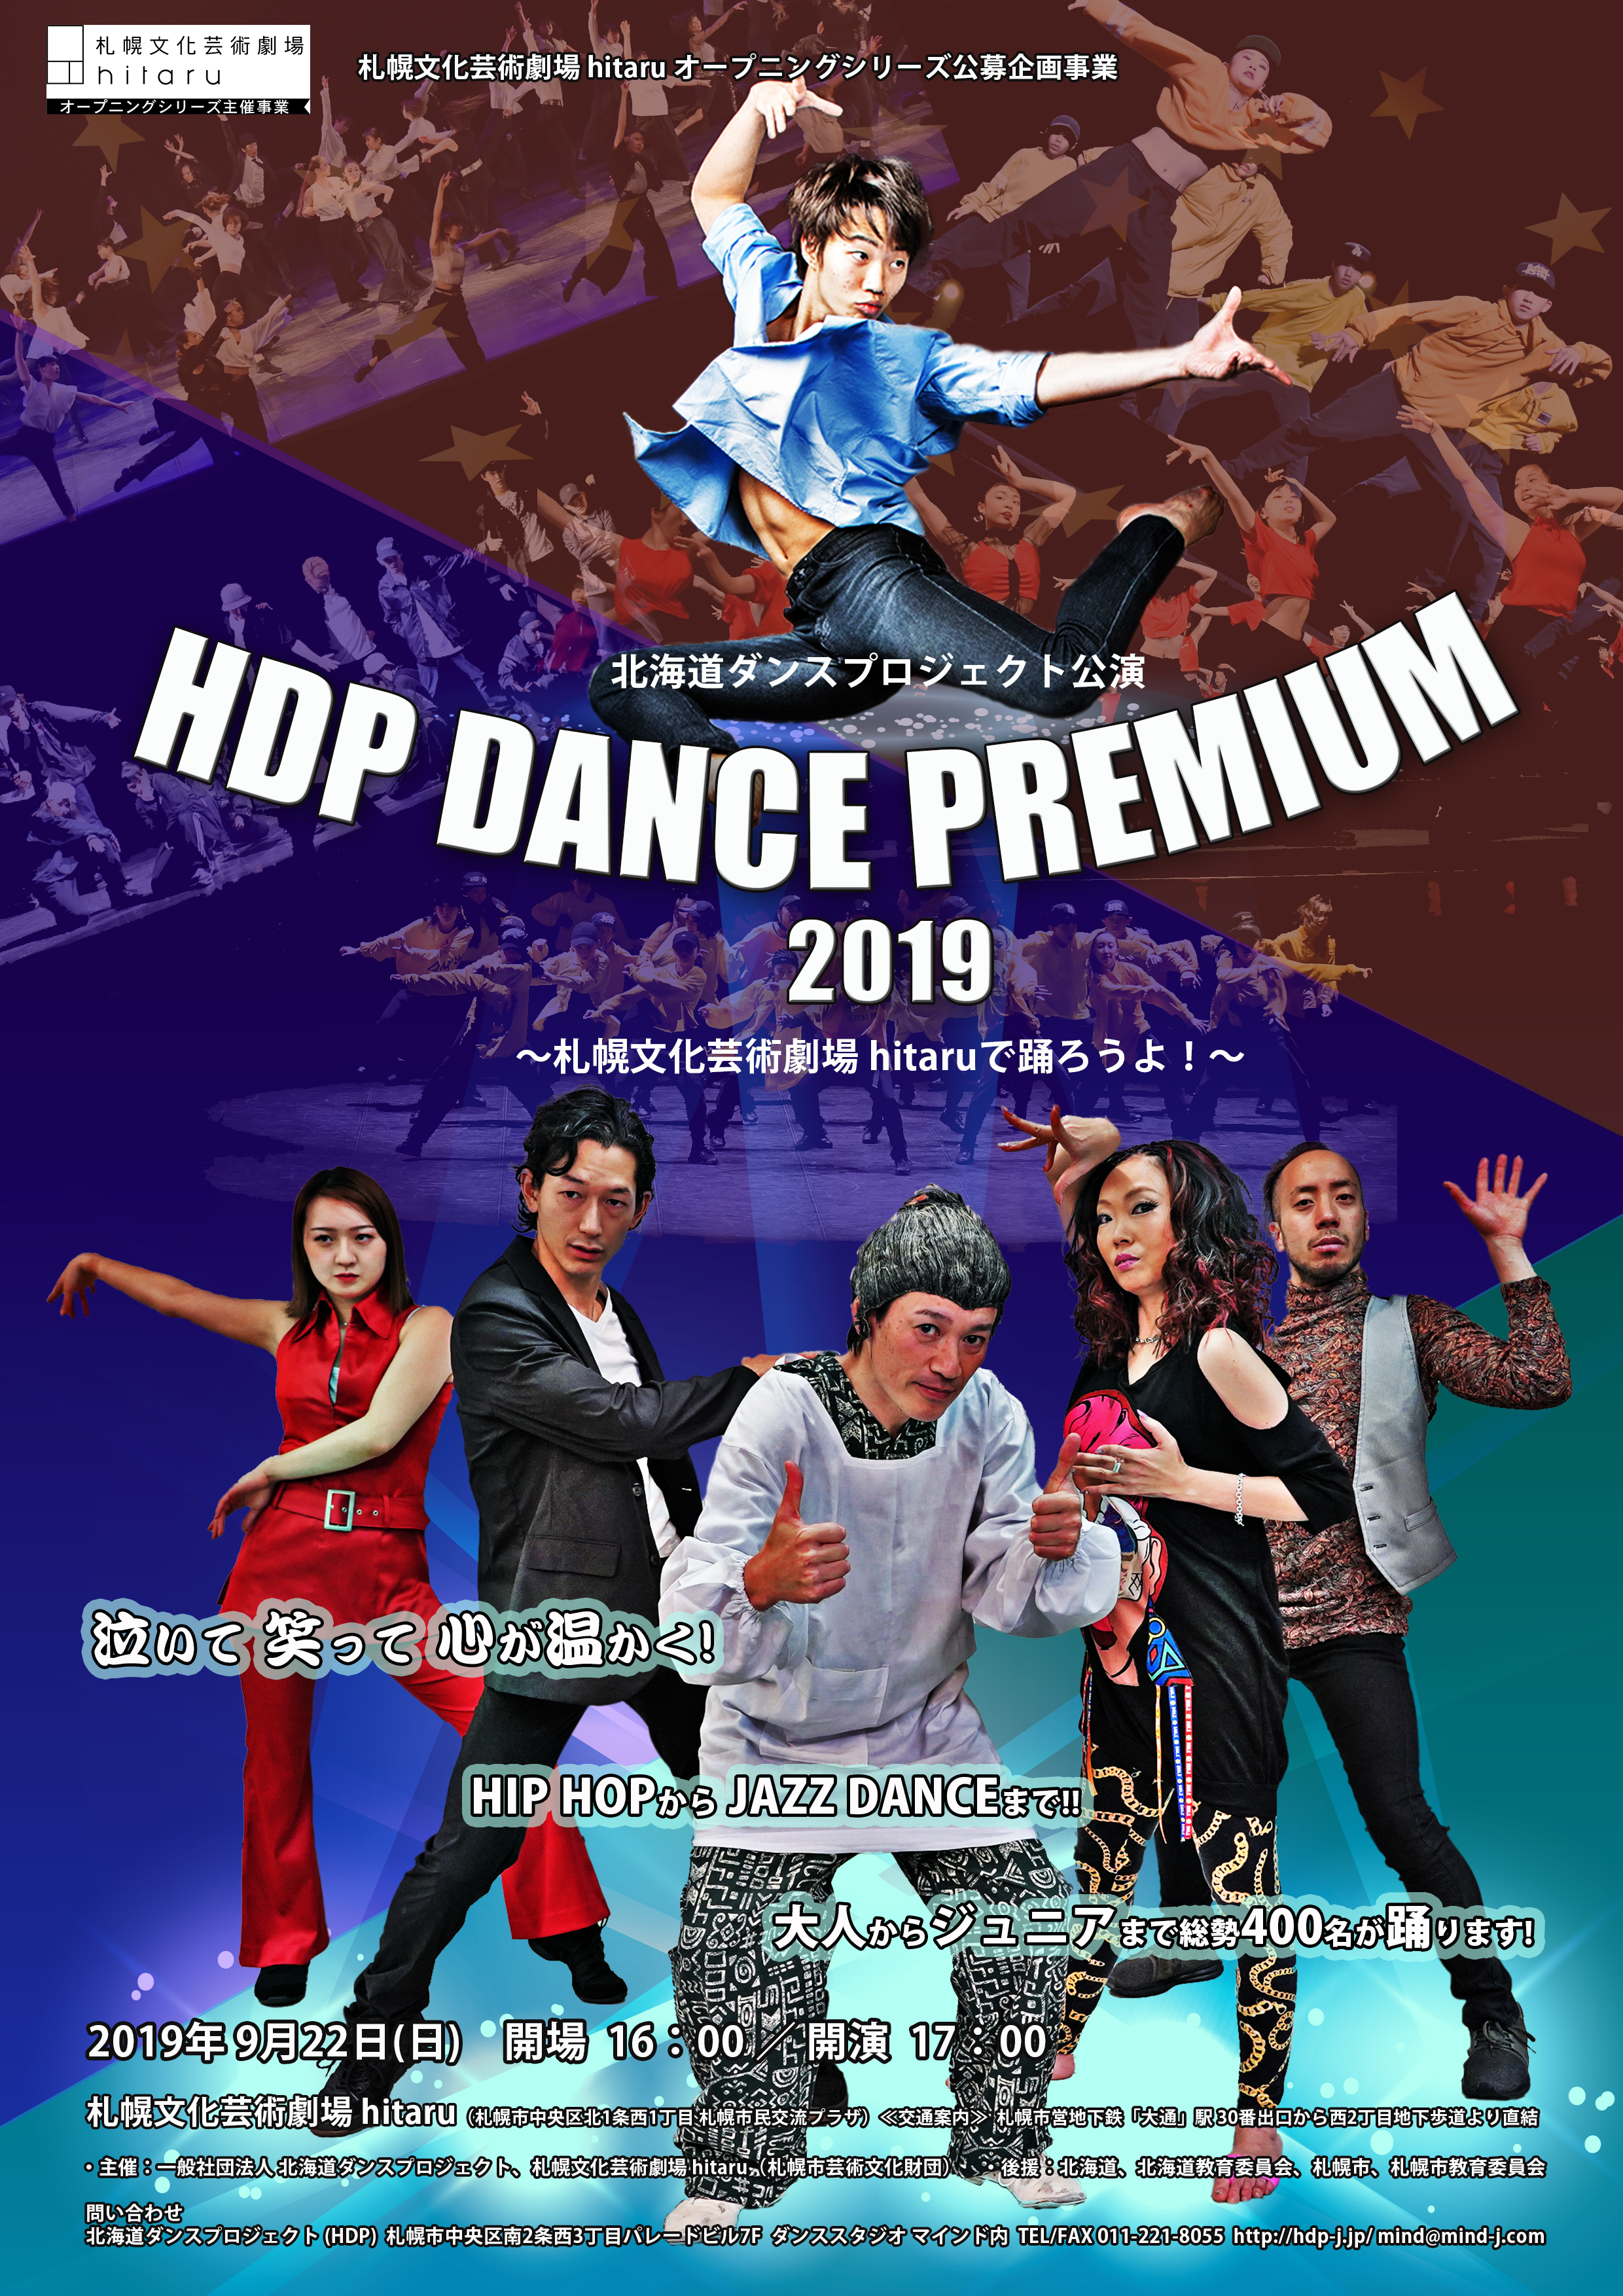 [Proposal-based event] HDP Dance Premium 2019 hosted by the Hokkaido Dance Project image